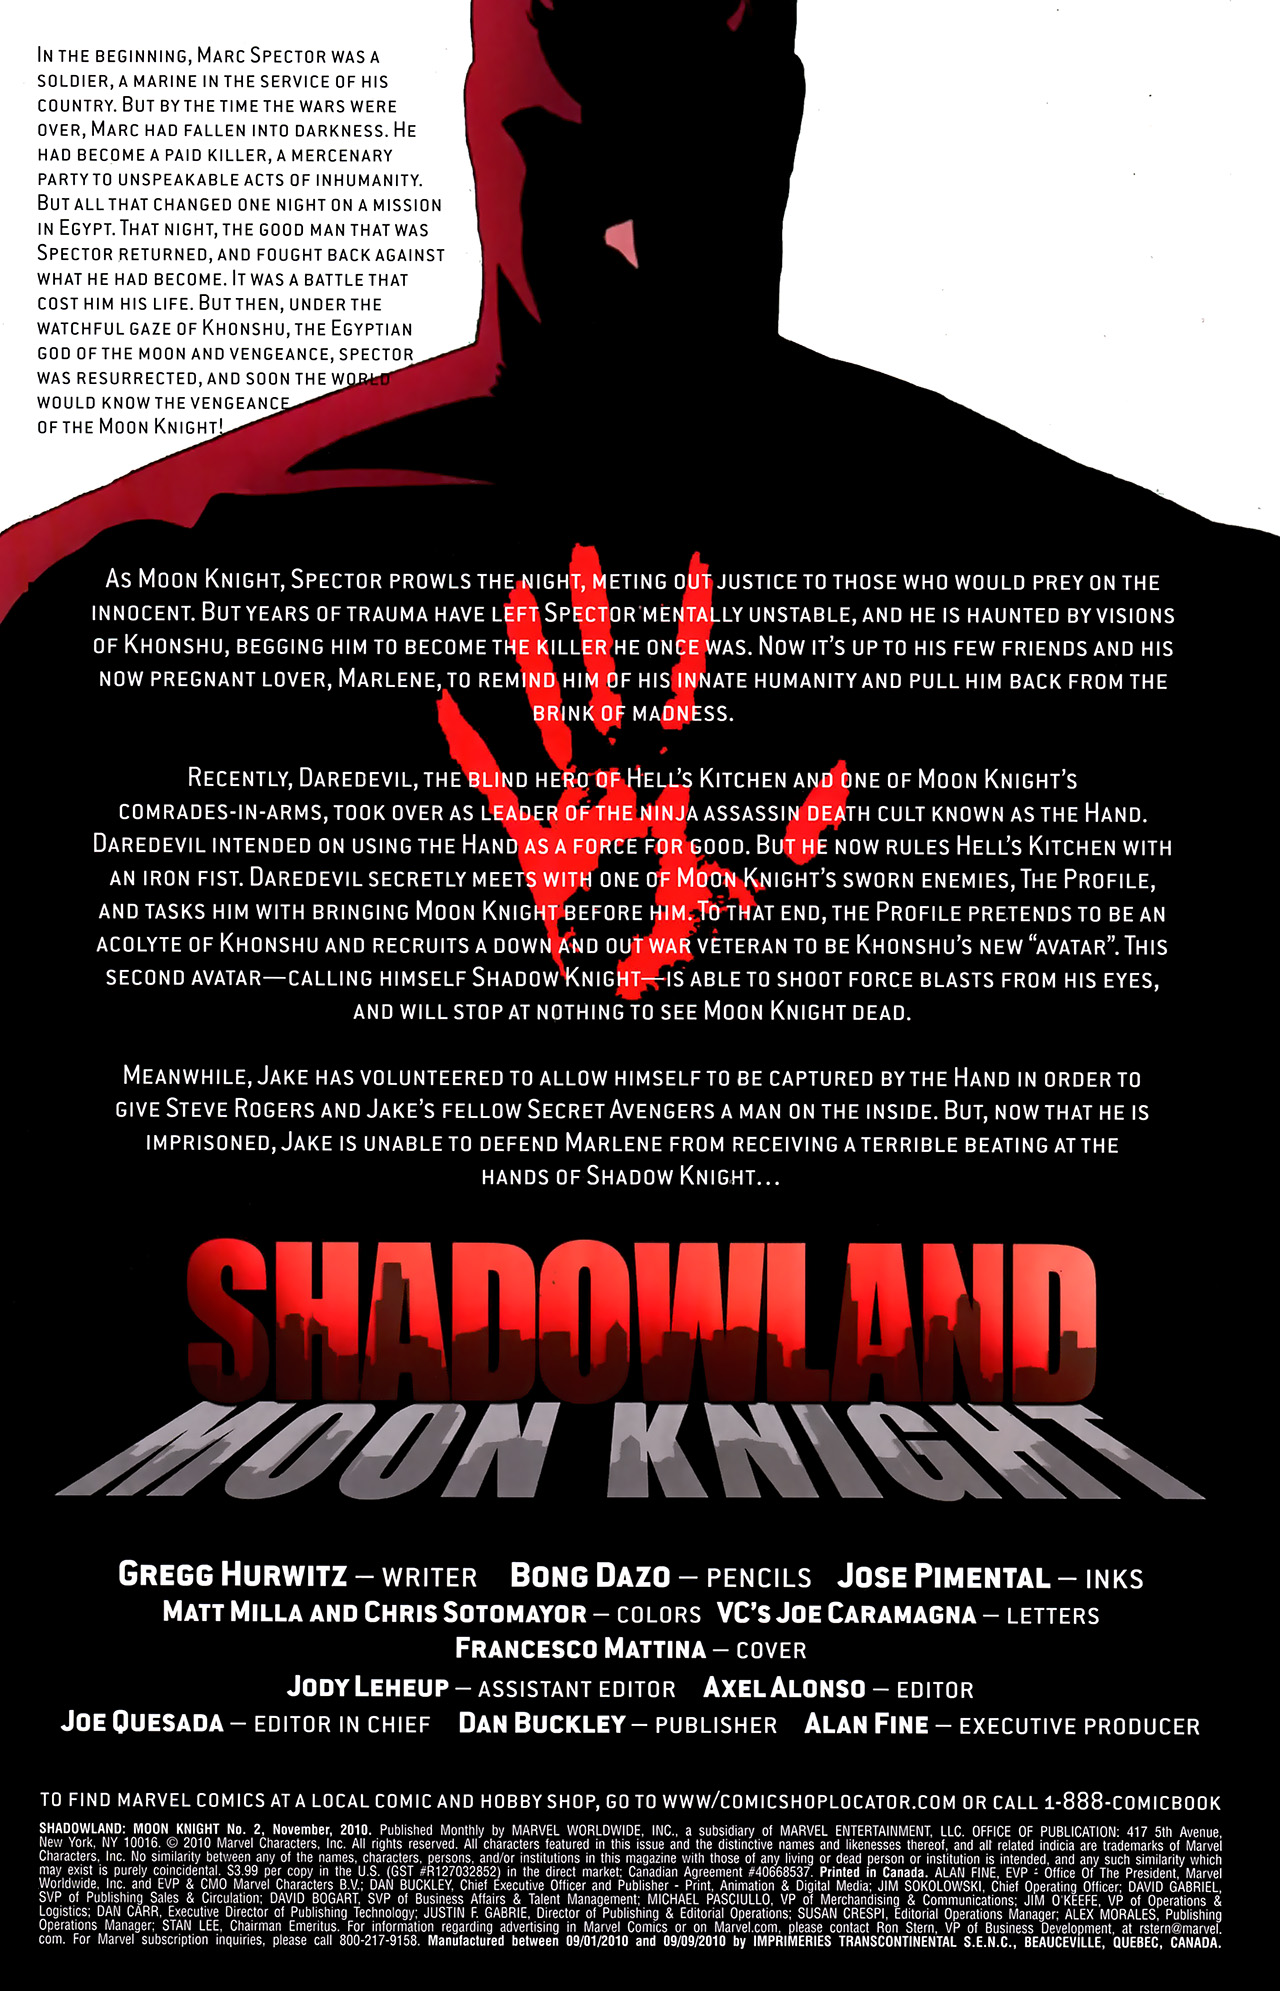 Read online Shadowland: Moon Knight comic -  Issue #2 - 2